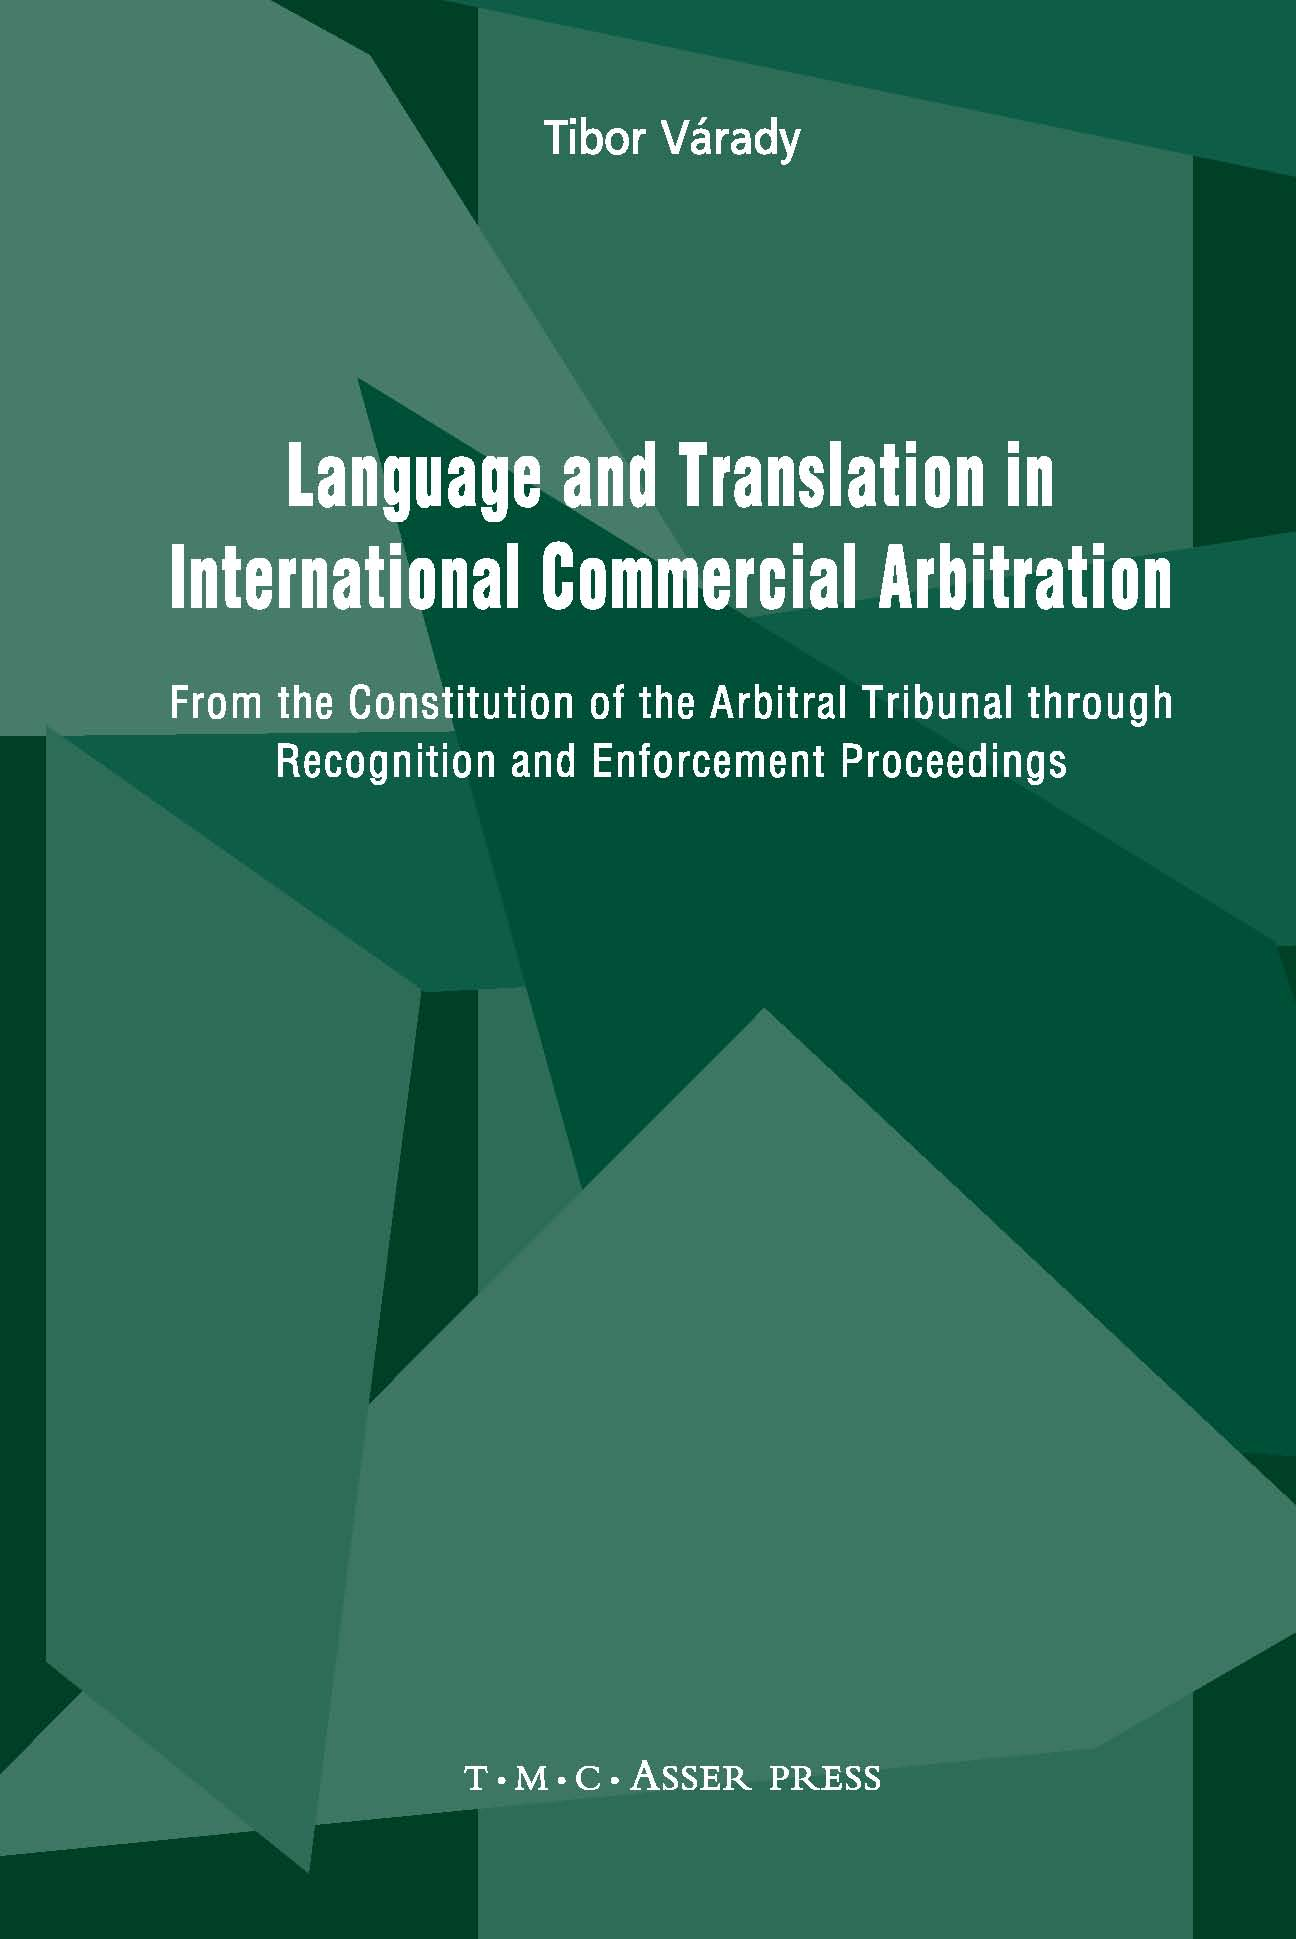 Language and Translation in International Commercial Arbitration - From the Constitution of the Arbitral Tribunal through Recognition and Enforcement Proceedings